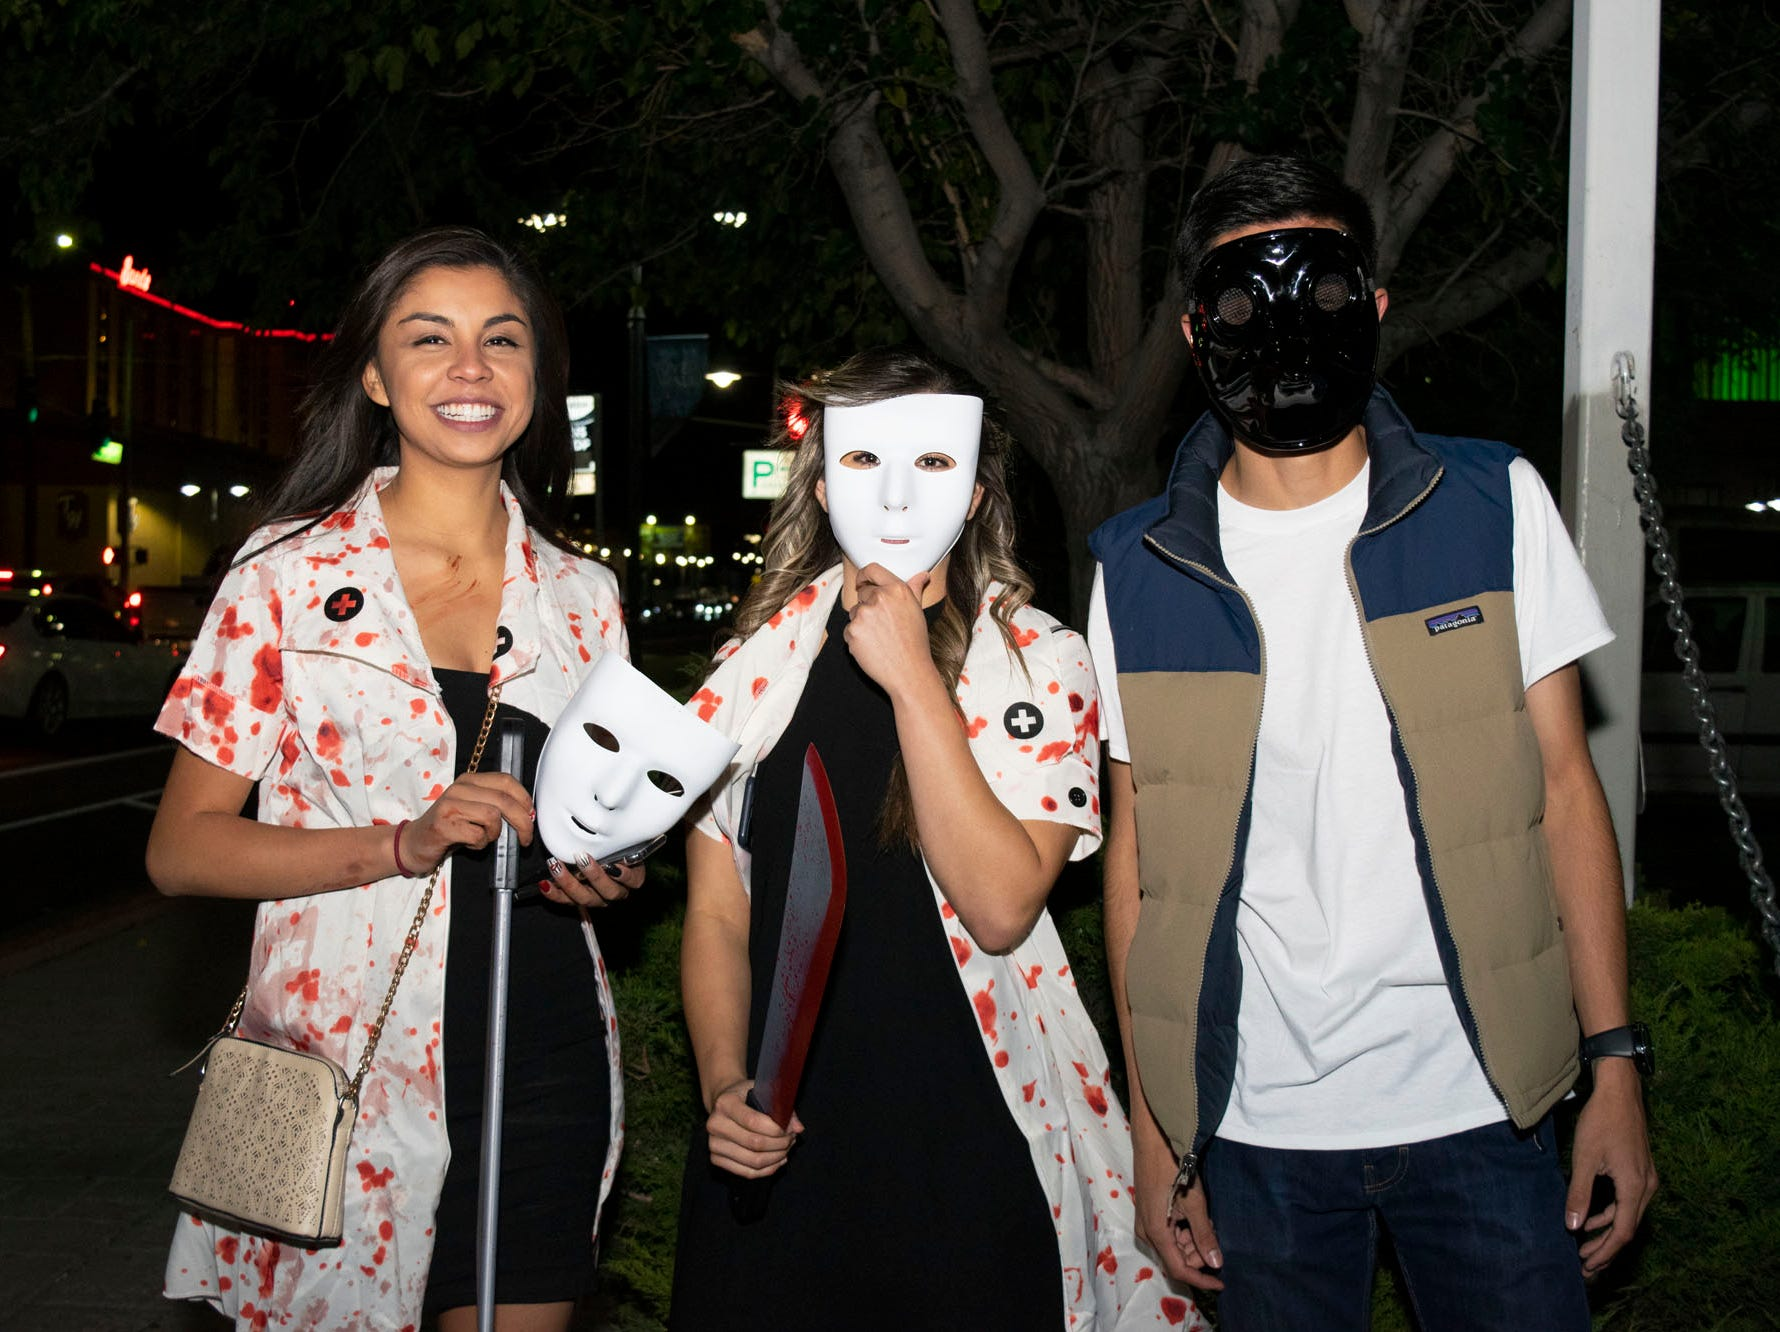 Irma Fernandez, Monique Rodriguez, and Adrian Jimeniez attend the Zombie Crawl on Saturday, Oct. 20, 2018. Reno, Nev.